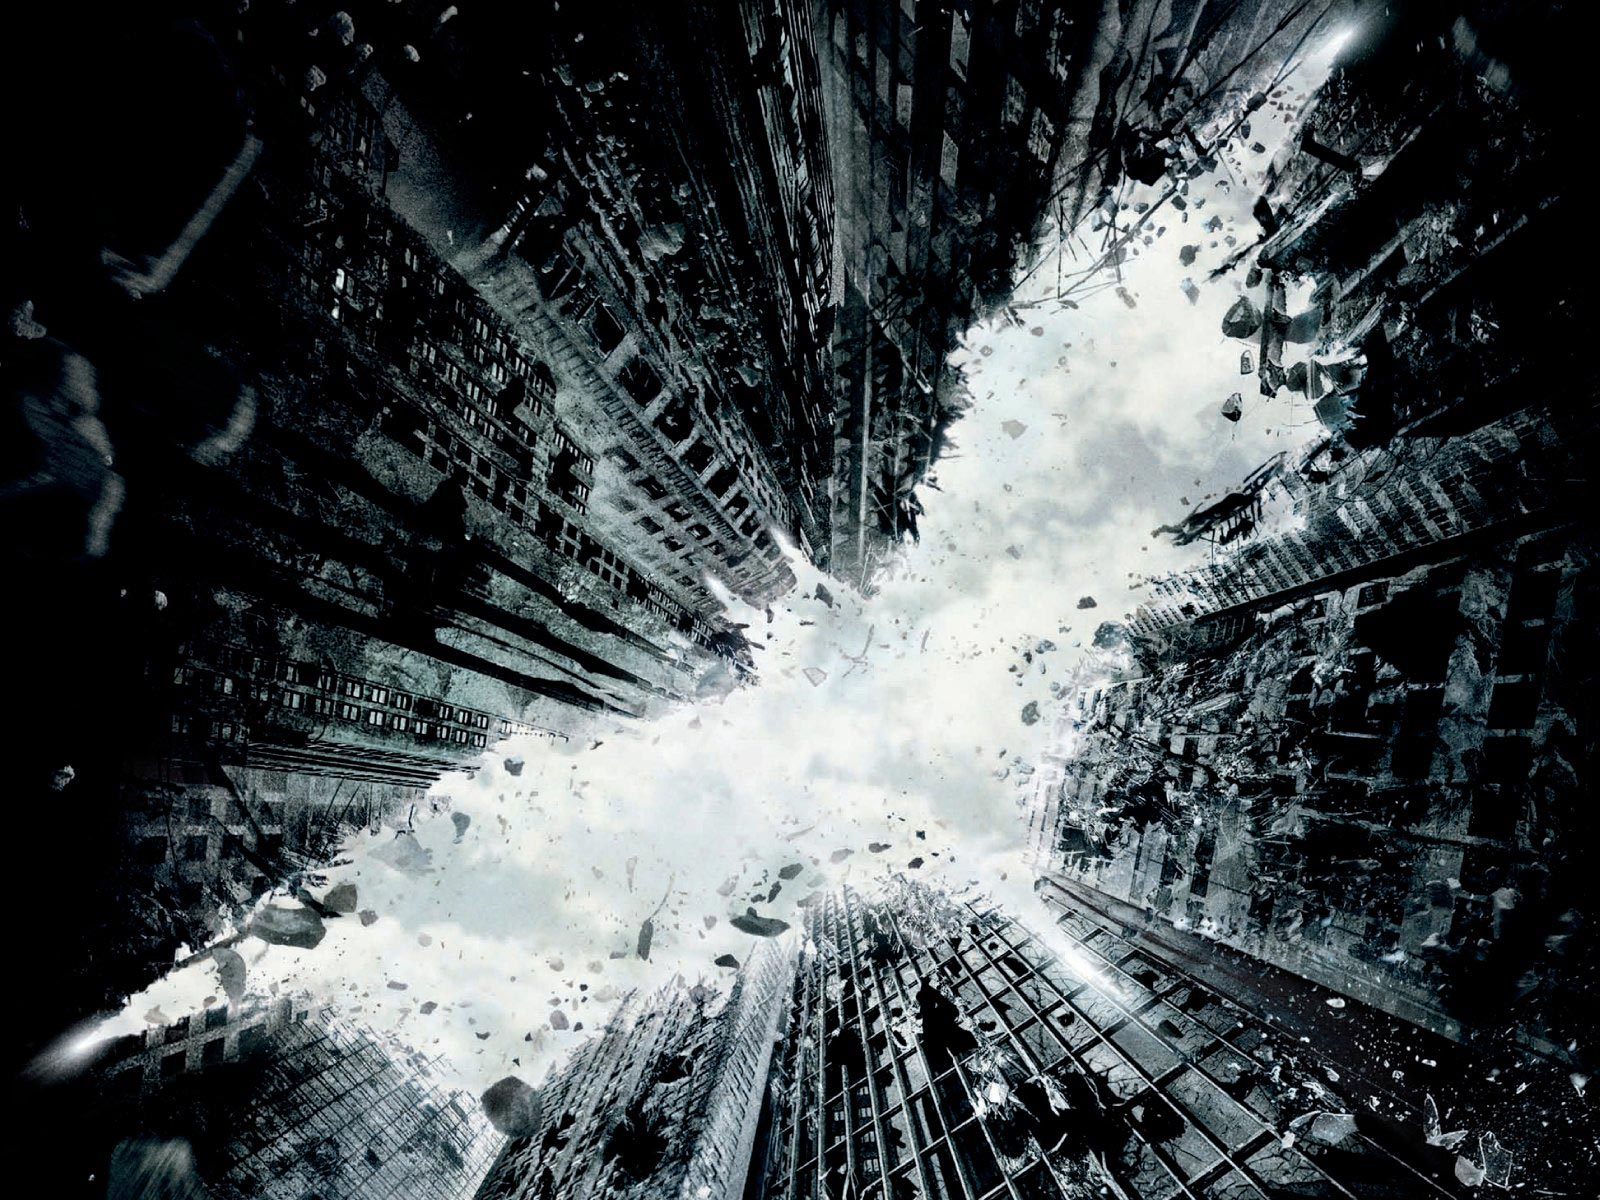 The Dark Knight Rises Teaser Trailer Leaked Online! - FilmoFilia